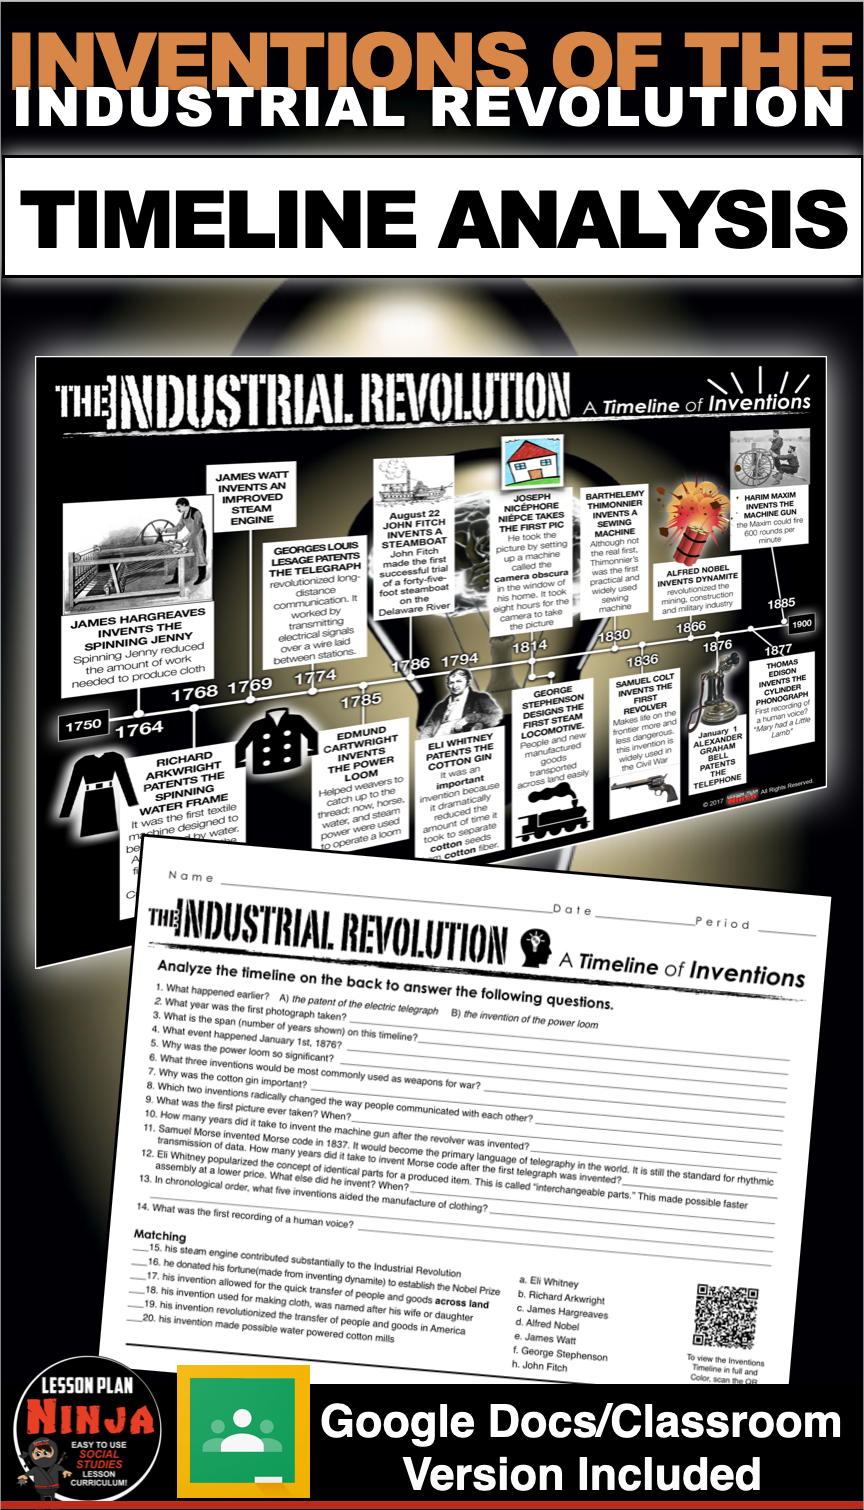 Invention Of The Industrial Revolution Timeline Analysi Google Doc Version Citing Text Evidence History Lesson Plans A Geographical Africa Paraphrase